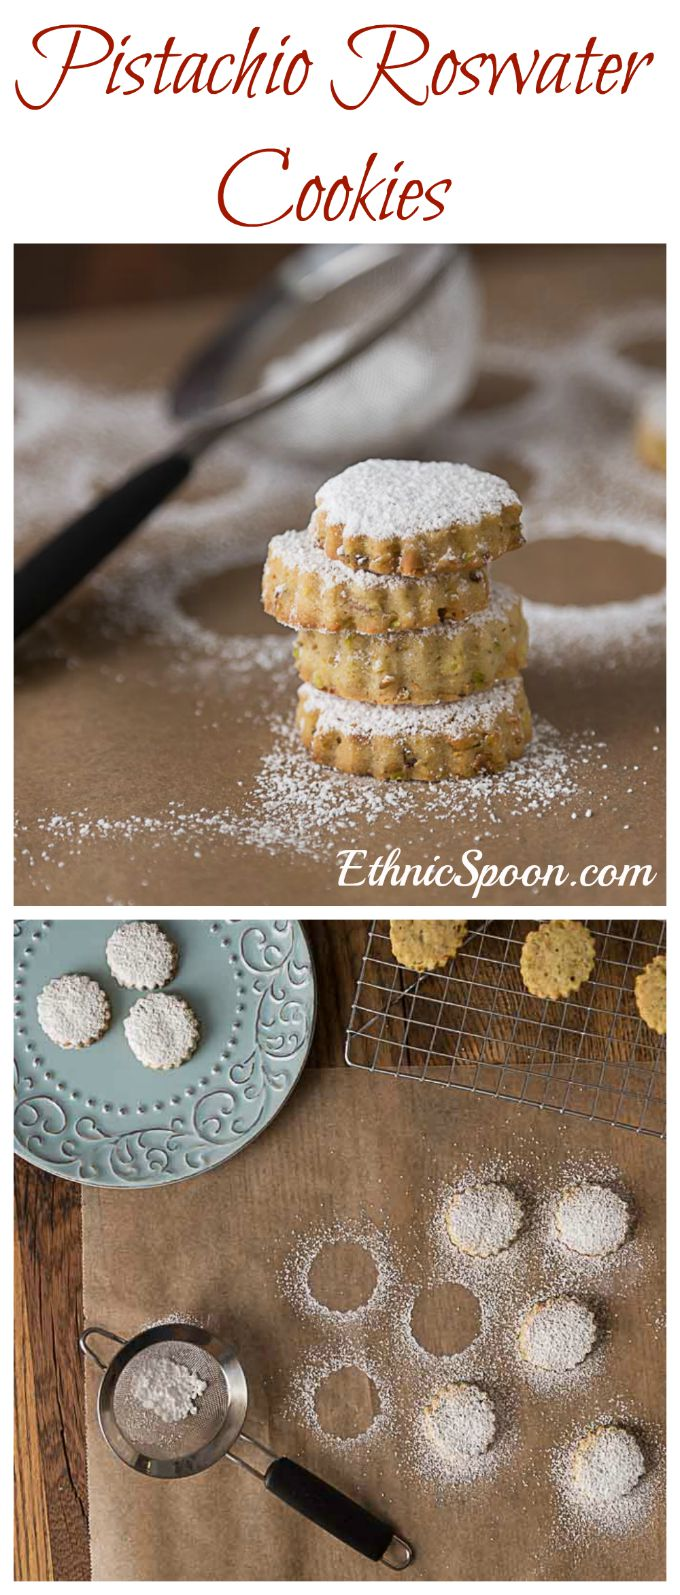 Middle Eastern style shortbread cookies with pistachios and rosewater. You will LOVE these cookies with a nice floral hint from the rosewater. | ethnicspoon.com #middleeasterncookies #middleeastdessert #rosewatercookie